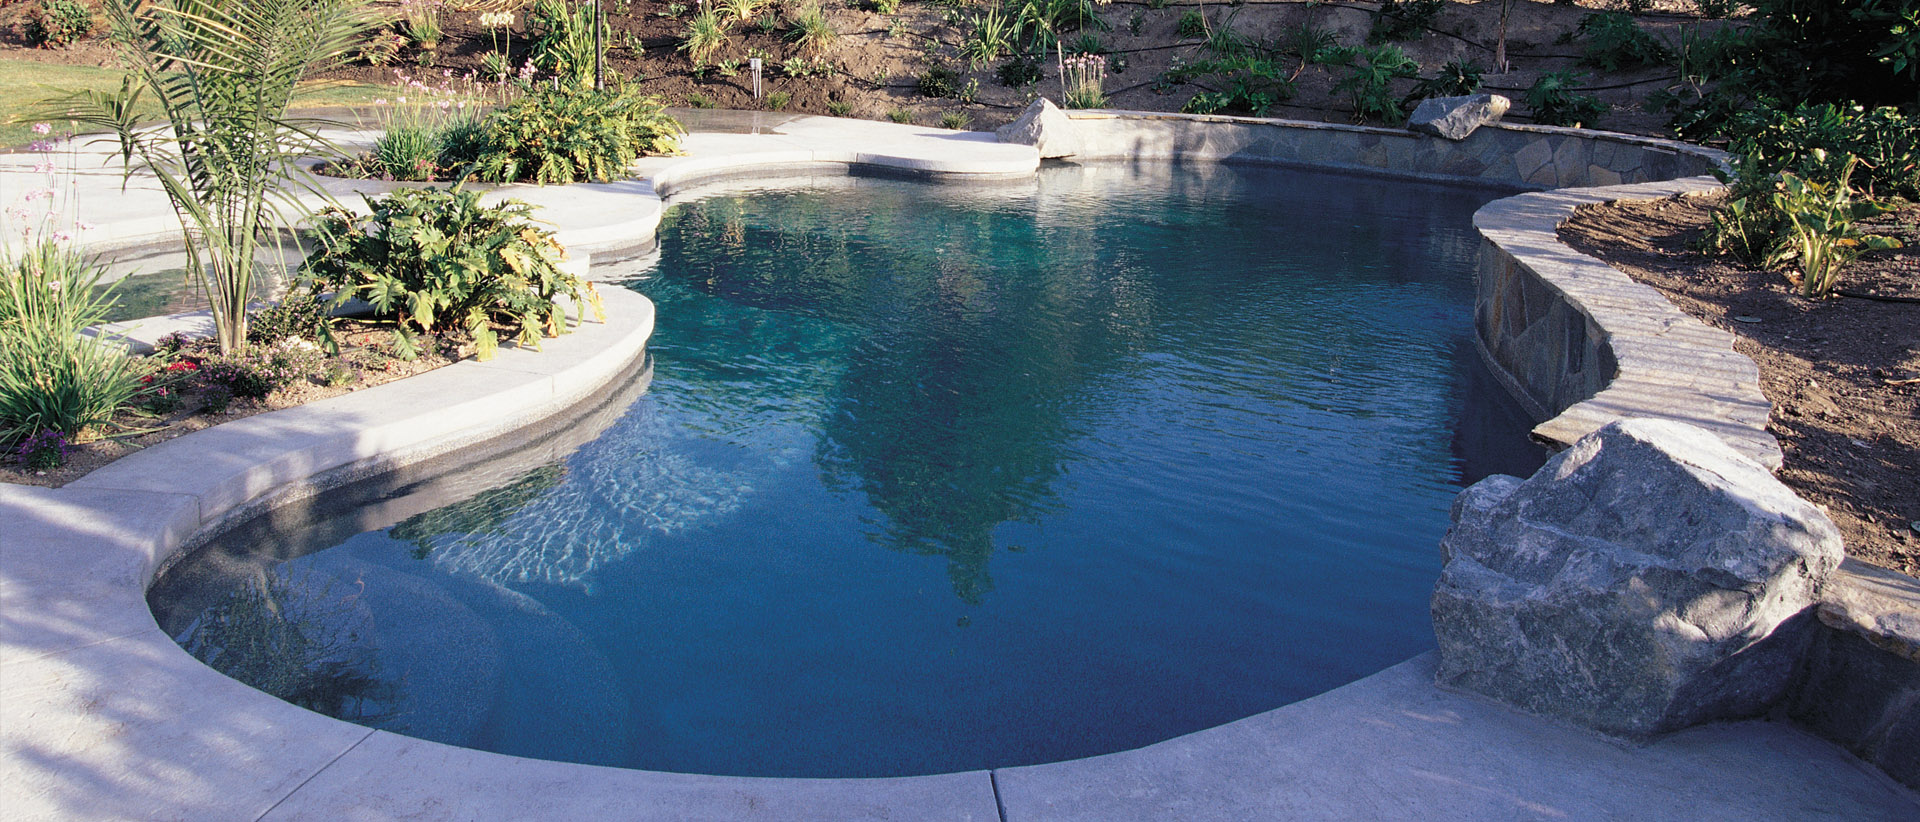 Pool Service Monmouth County nj Cleaning Company swimming